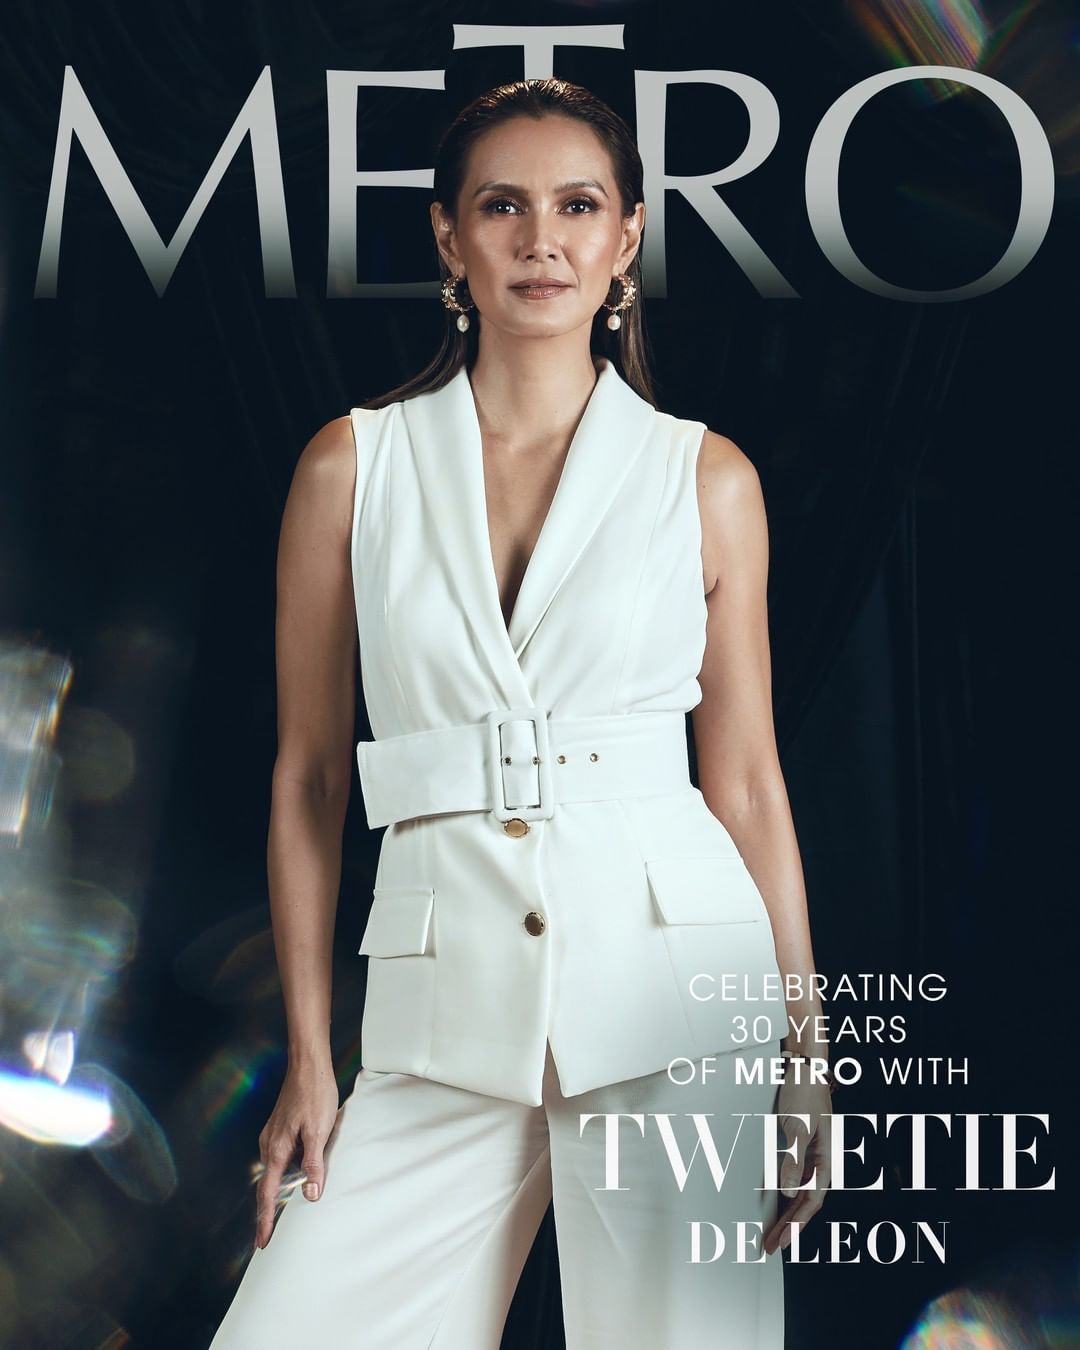 Tweetie De Leon for #Metro30's anniversary issue